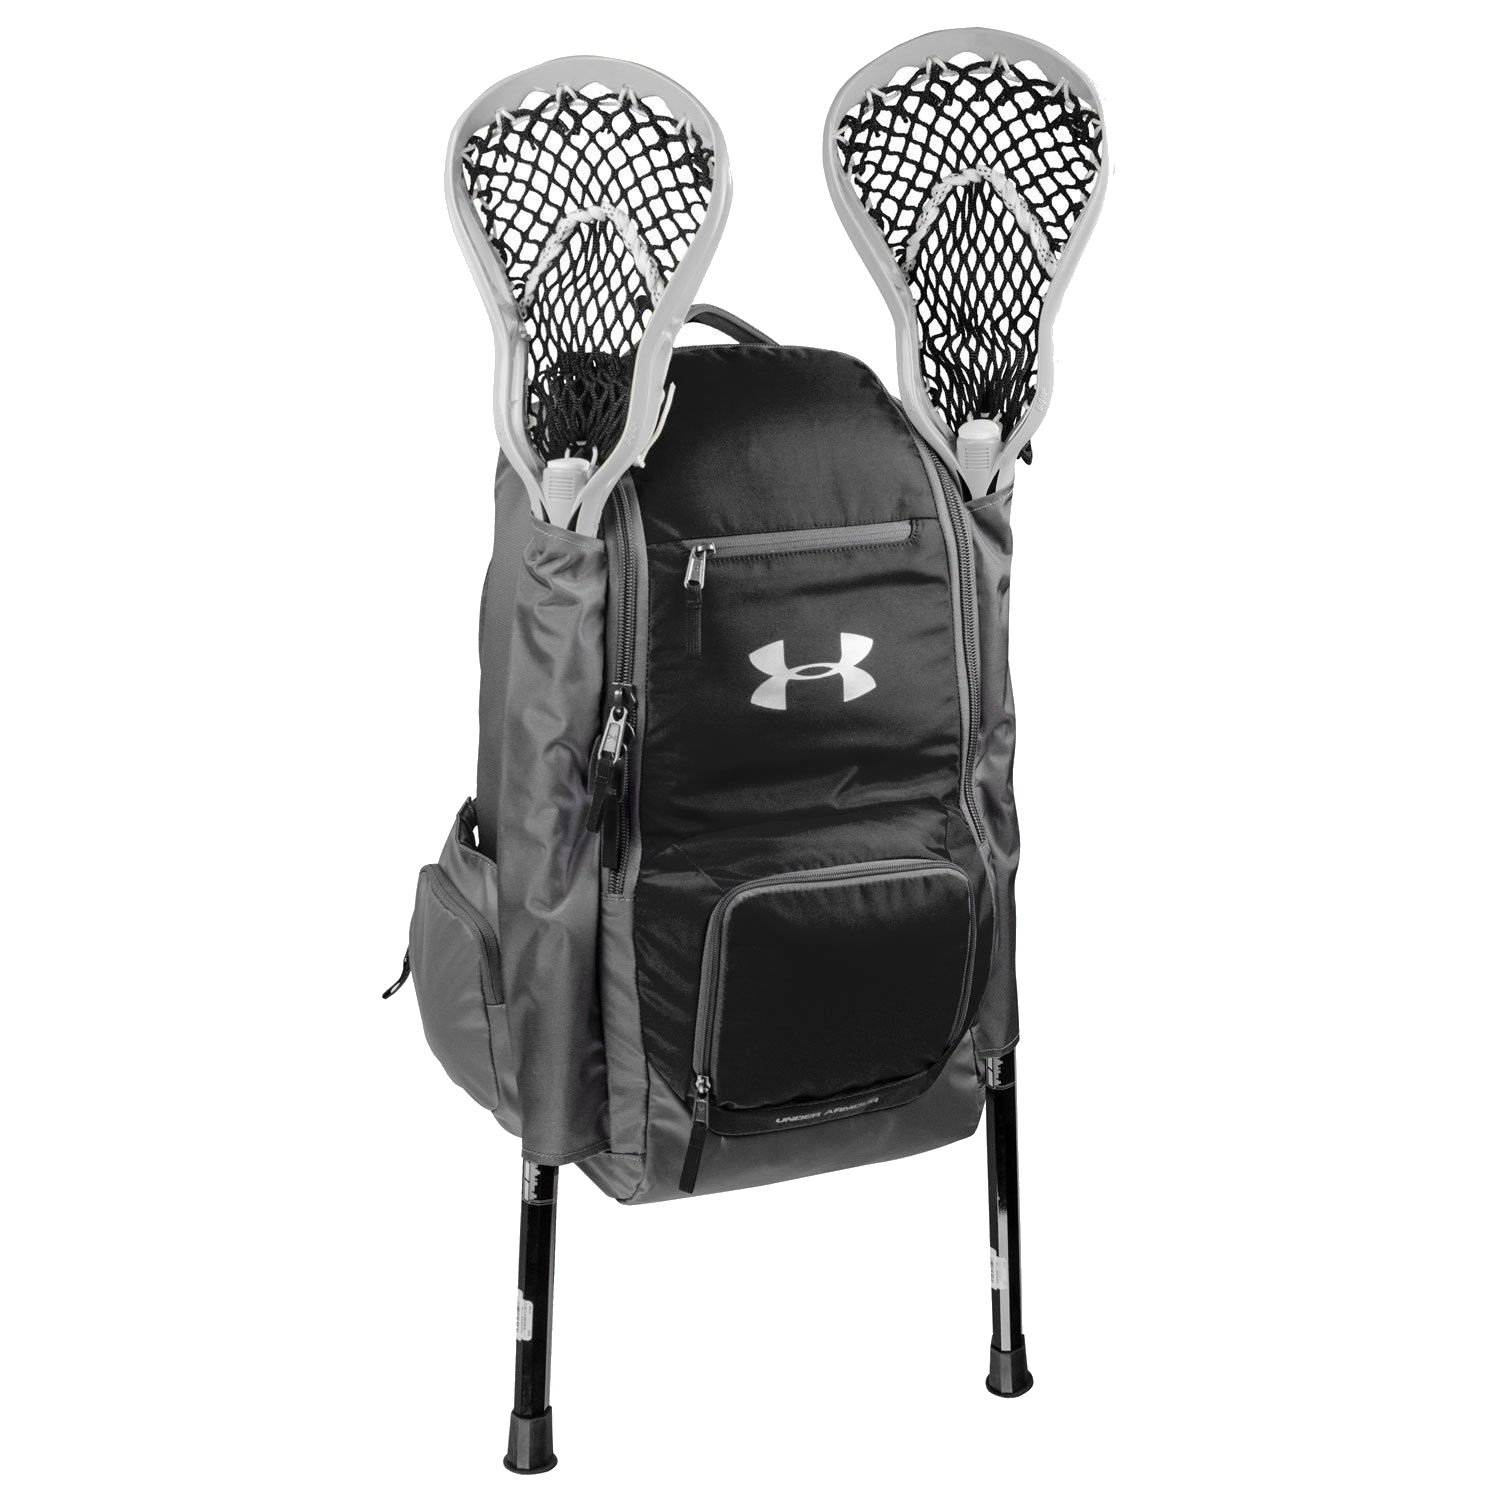 Under Armour Men's LAX Lacrosse Backpack Bag Black Size One Size by Under Armour